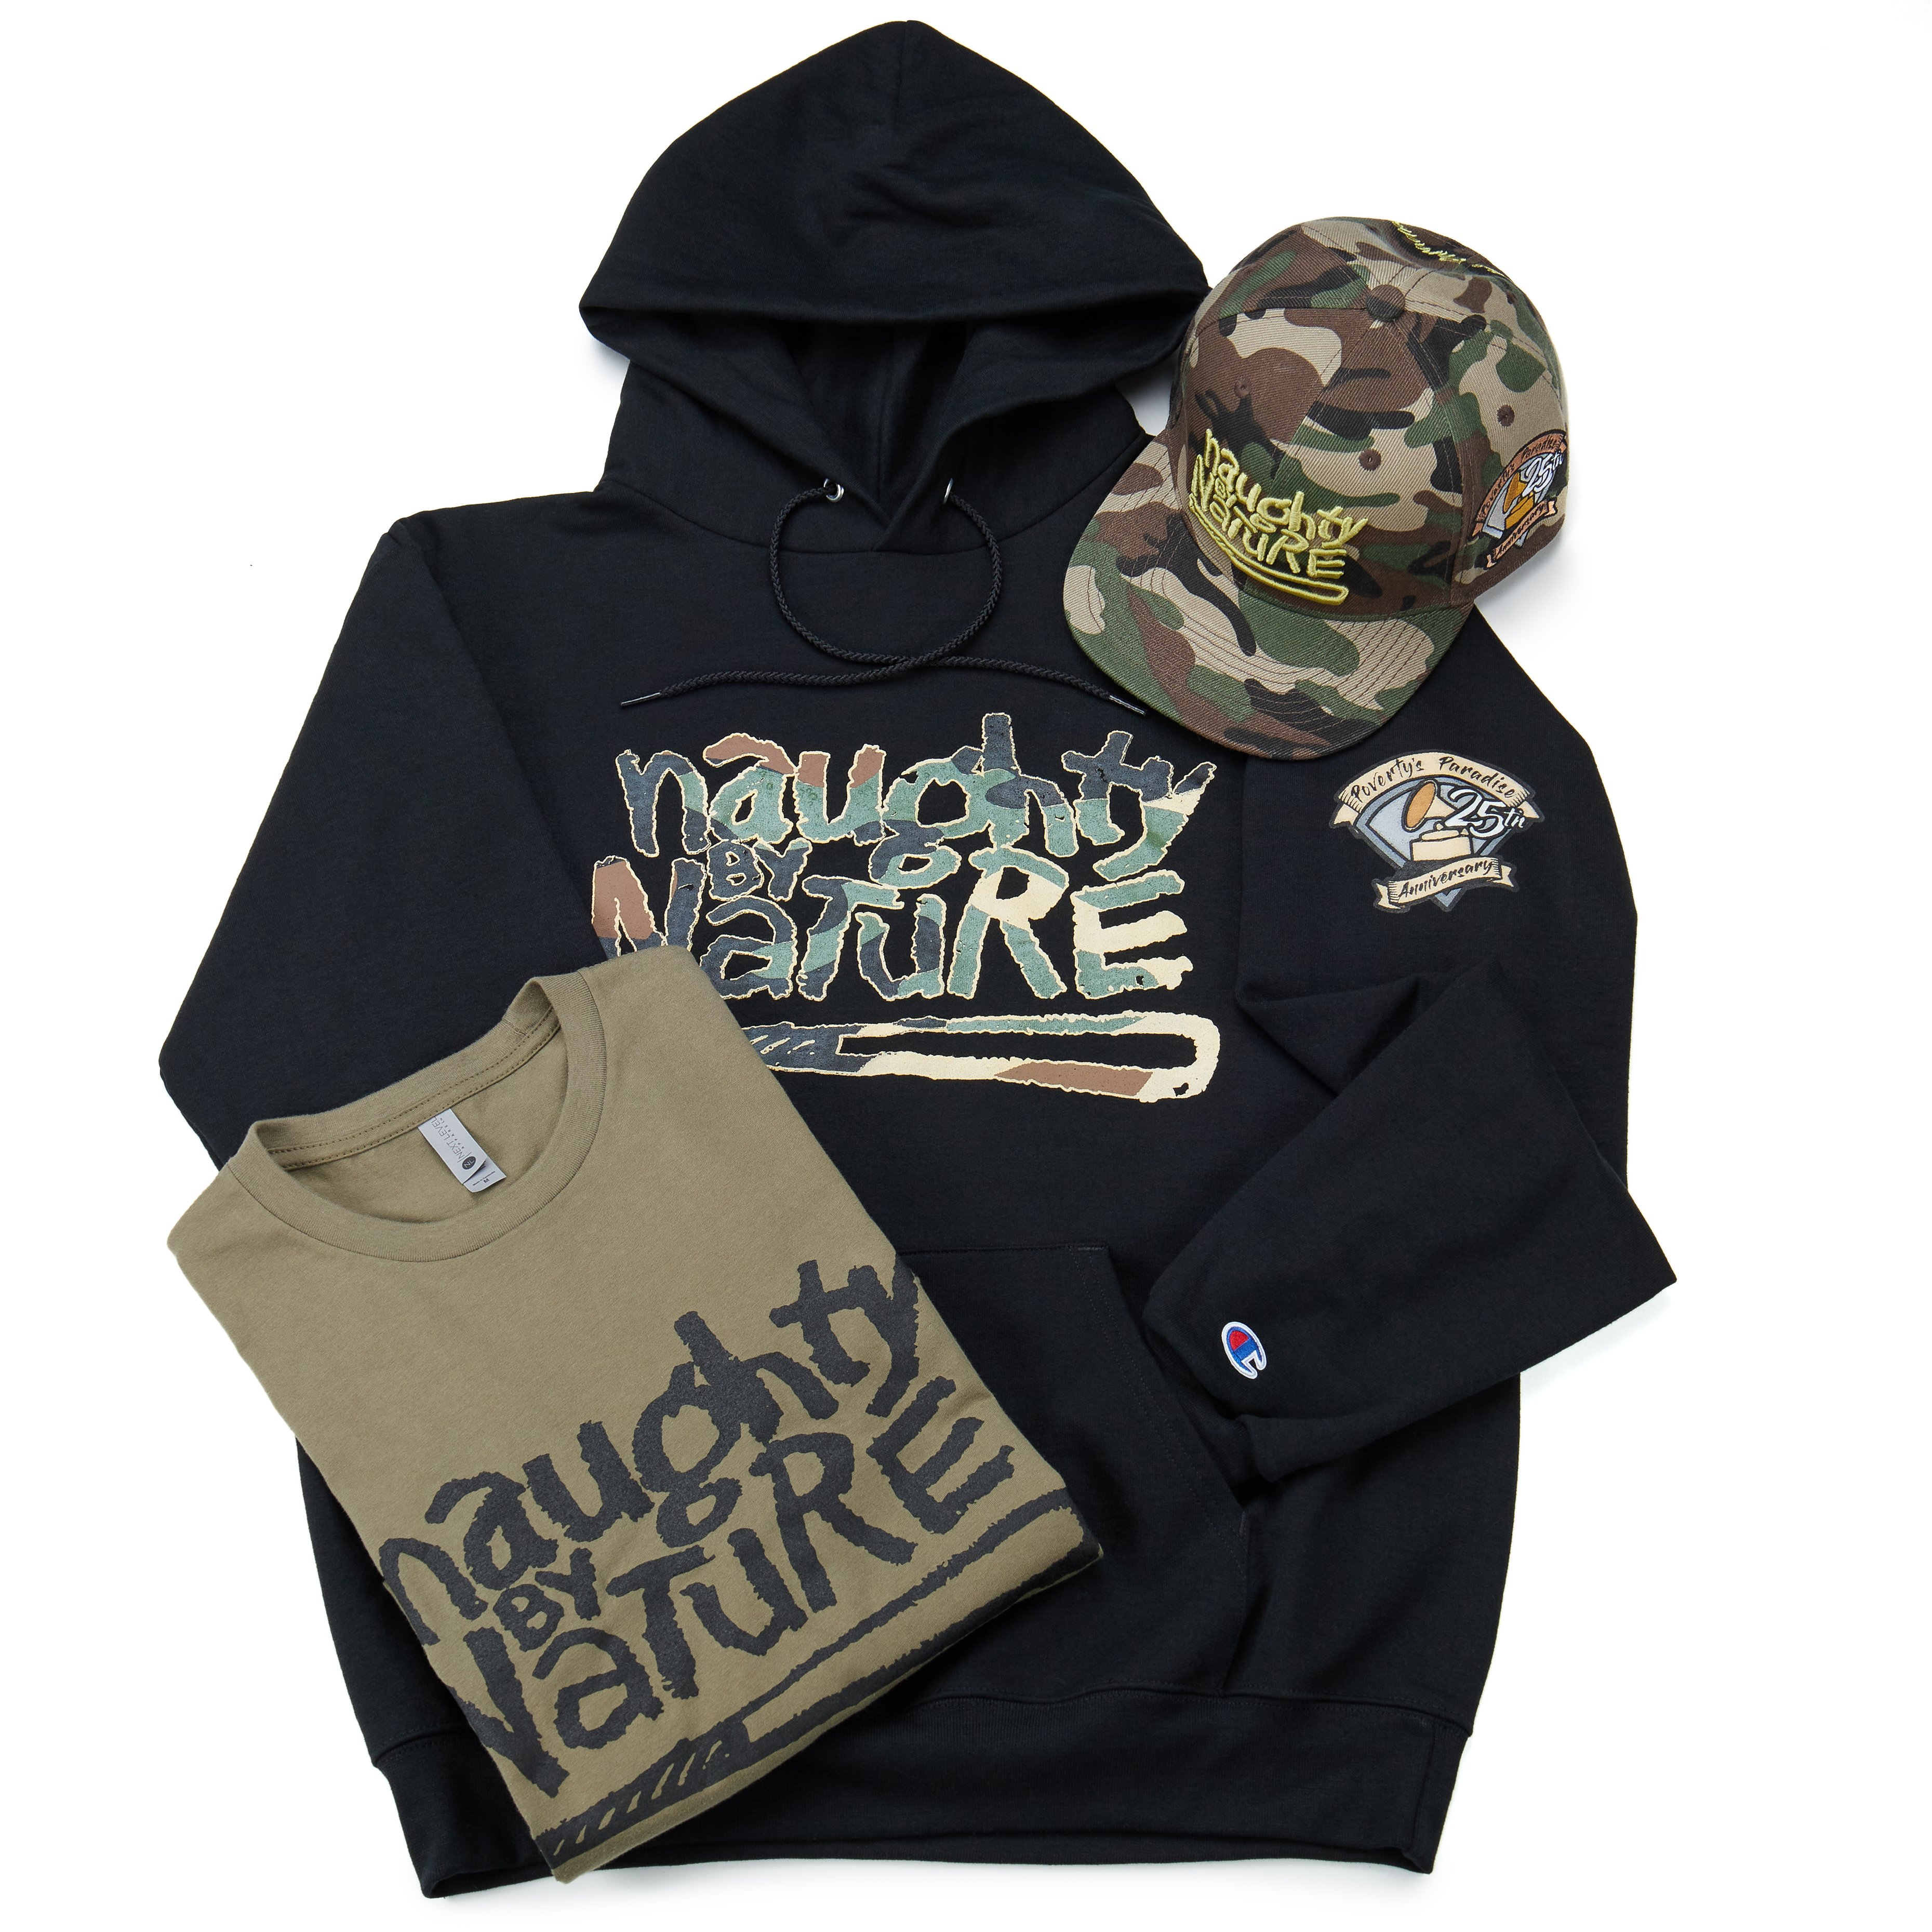 naughty by nature poverty's paradise collection